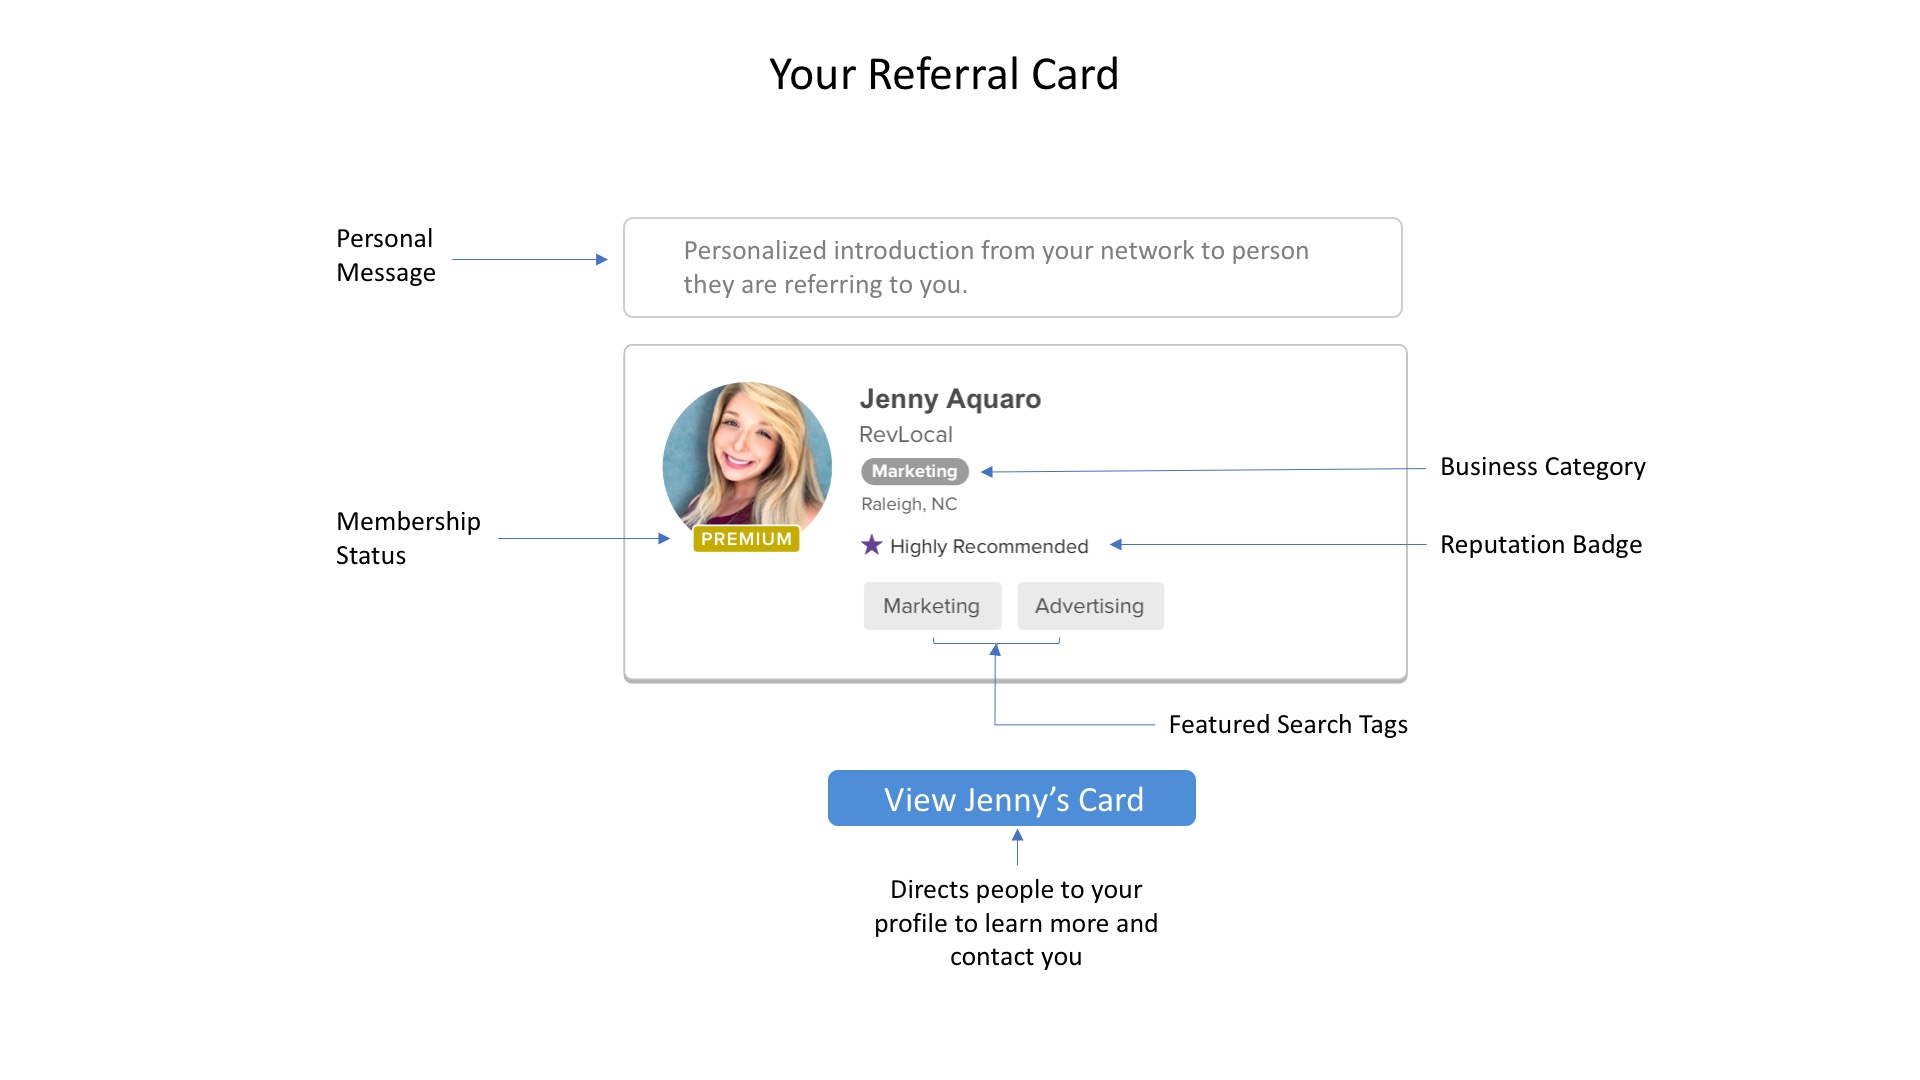 Referral_Card_Rollout.jpg